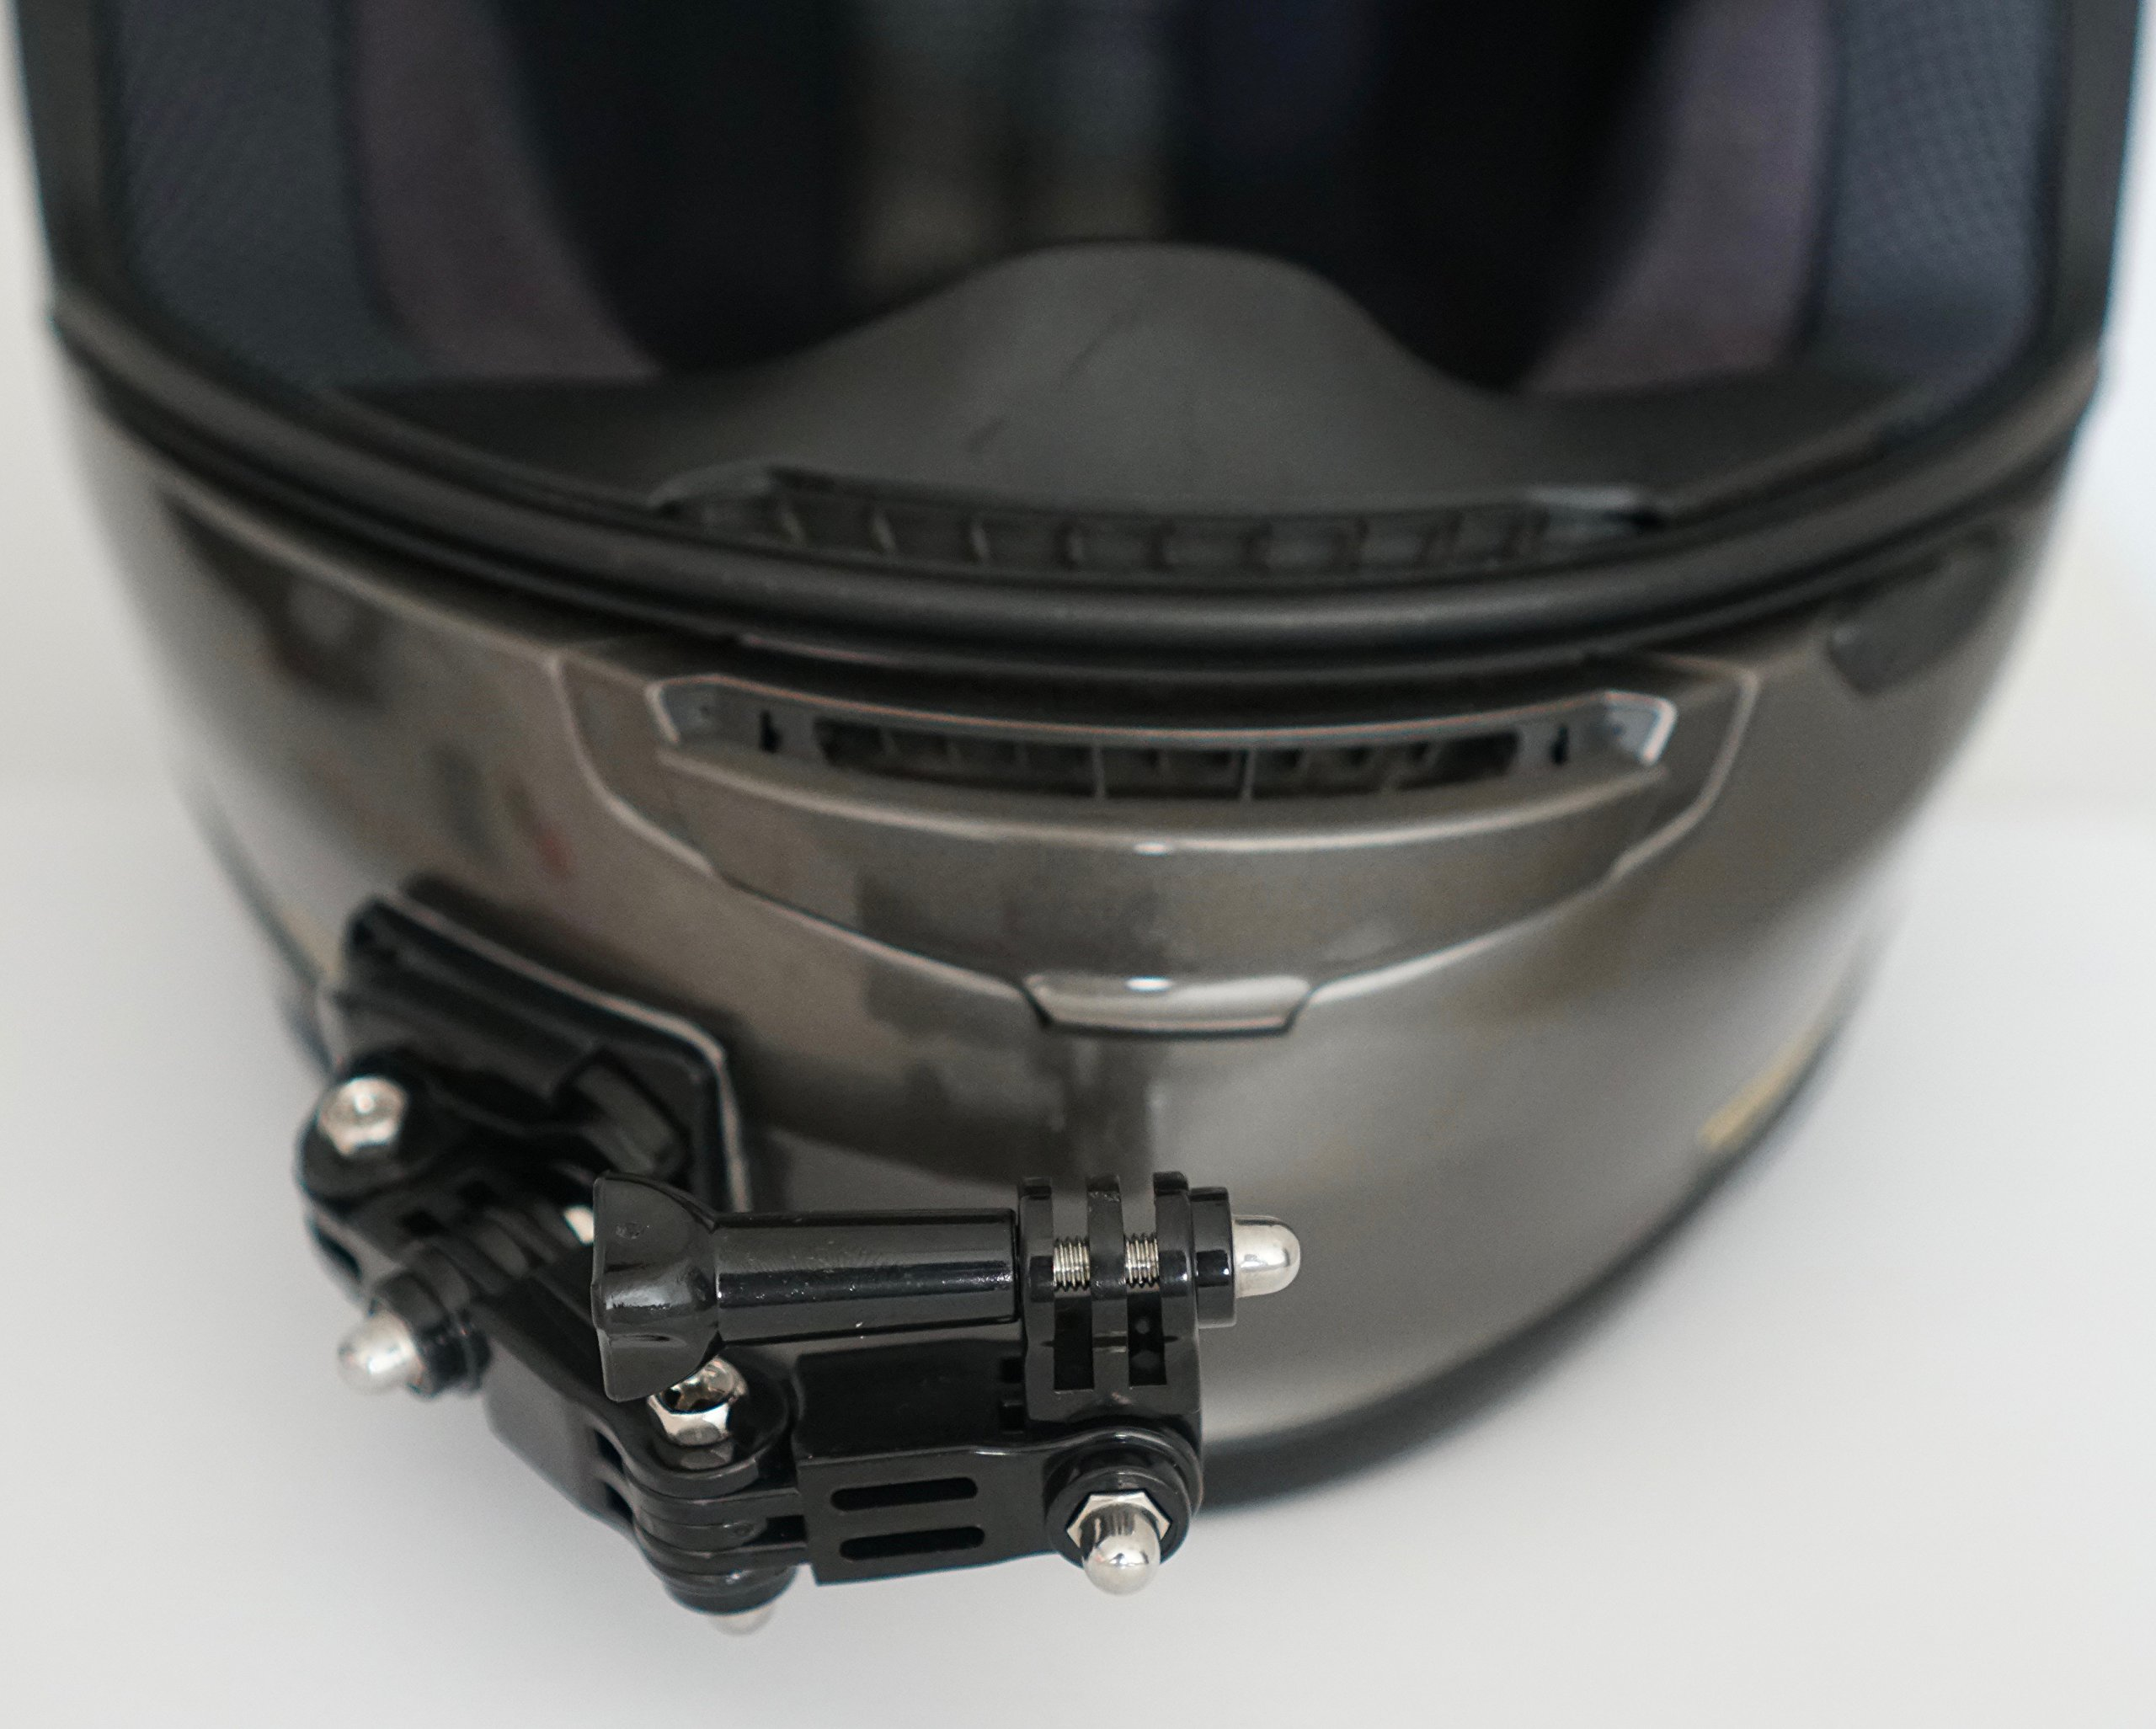 MotoRadds motorcycle curved Chin Mount Kit Frame GoPro Hero 3 6/5 Black Session 4 AKASO Campark YI Home Action Camera Front and Side Swivel curved head-Mounted with 3M Sticky Pad